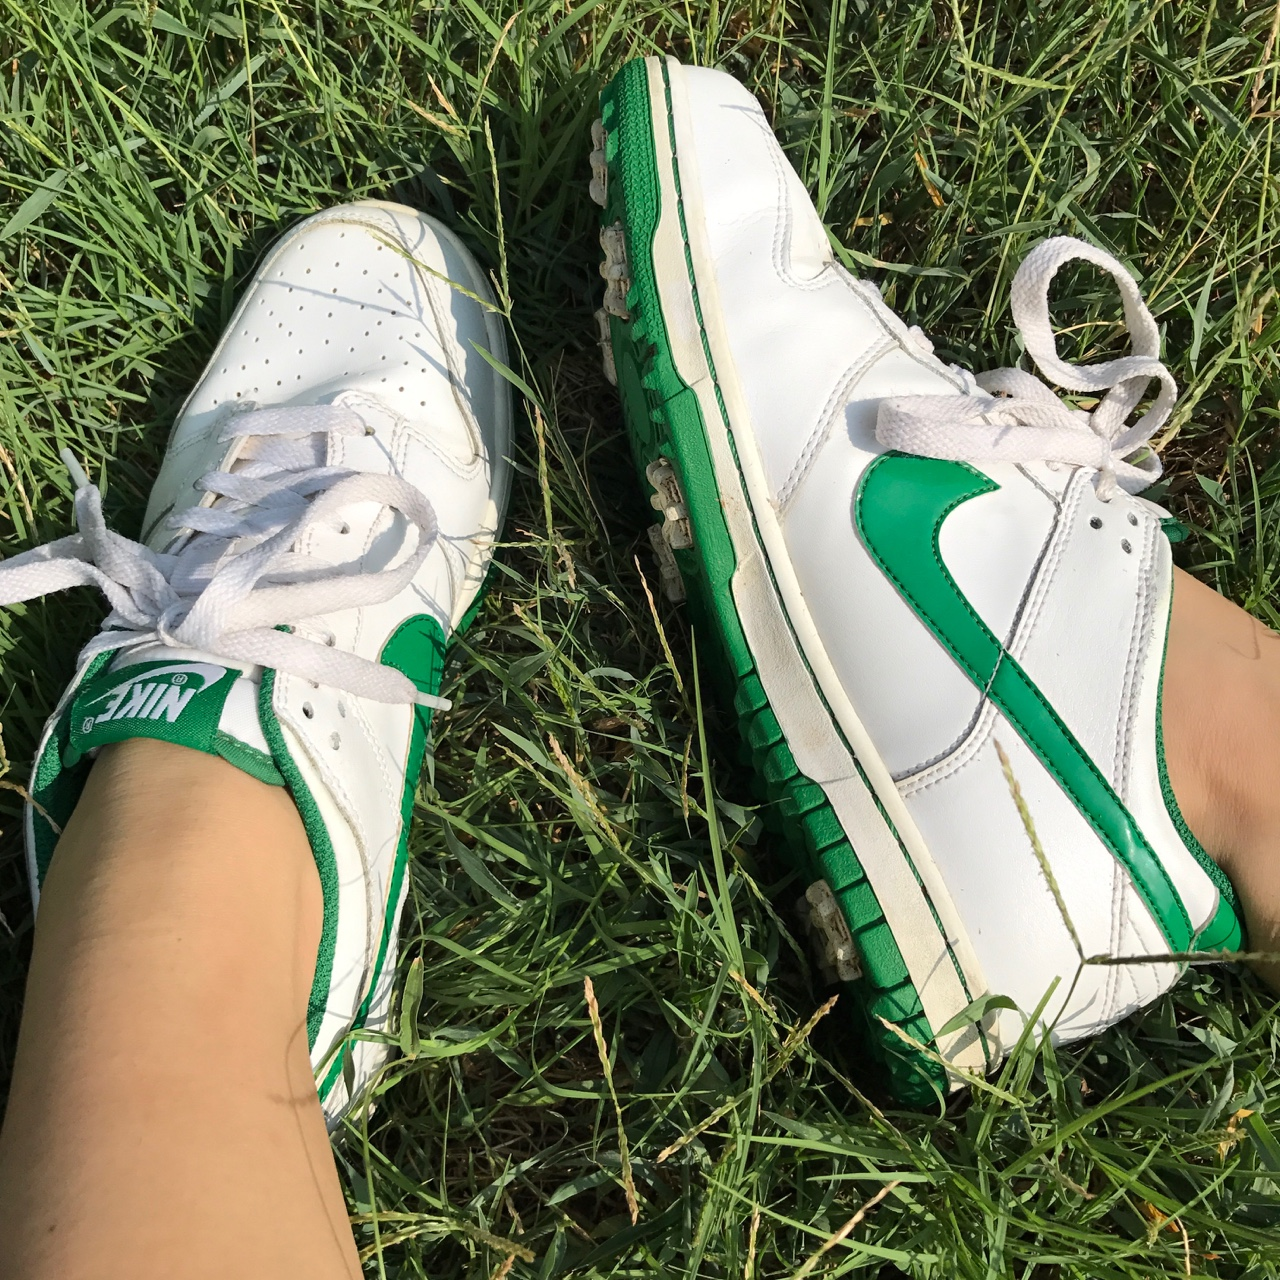 White Nike sneakers with green swoosh